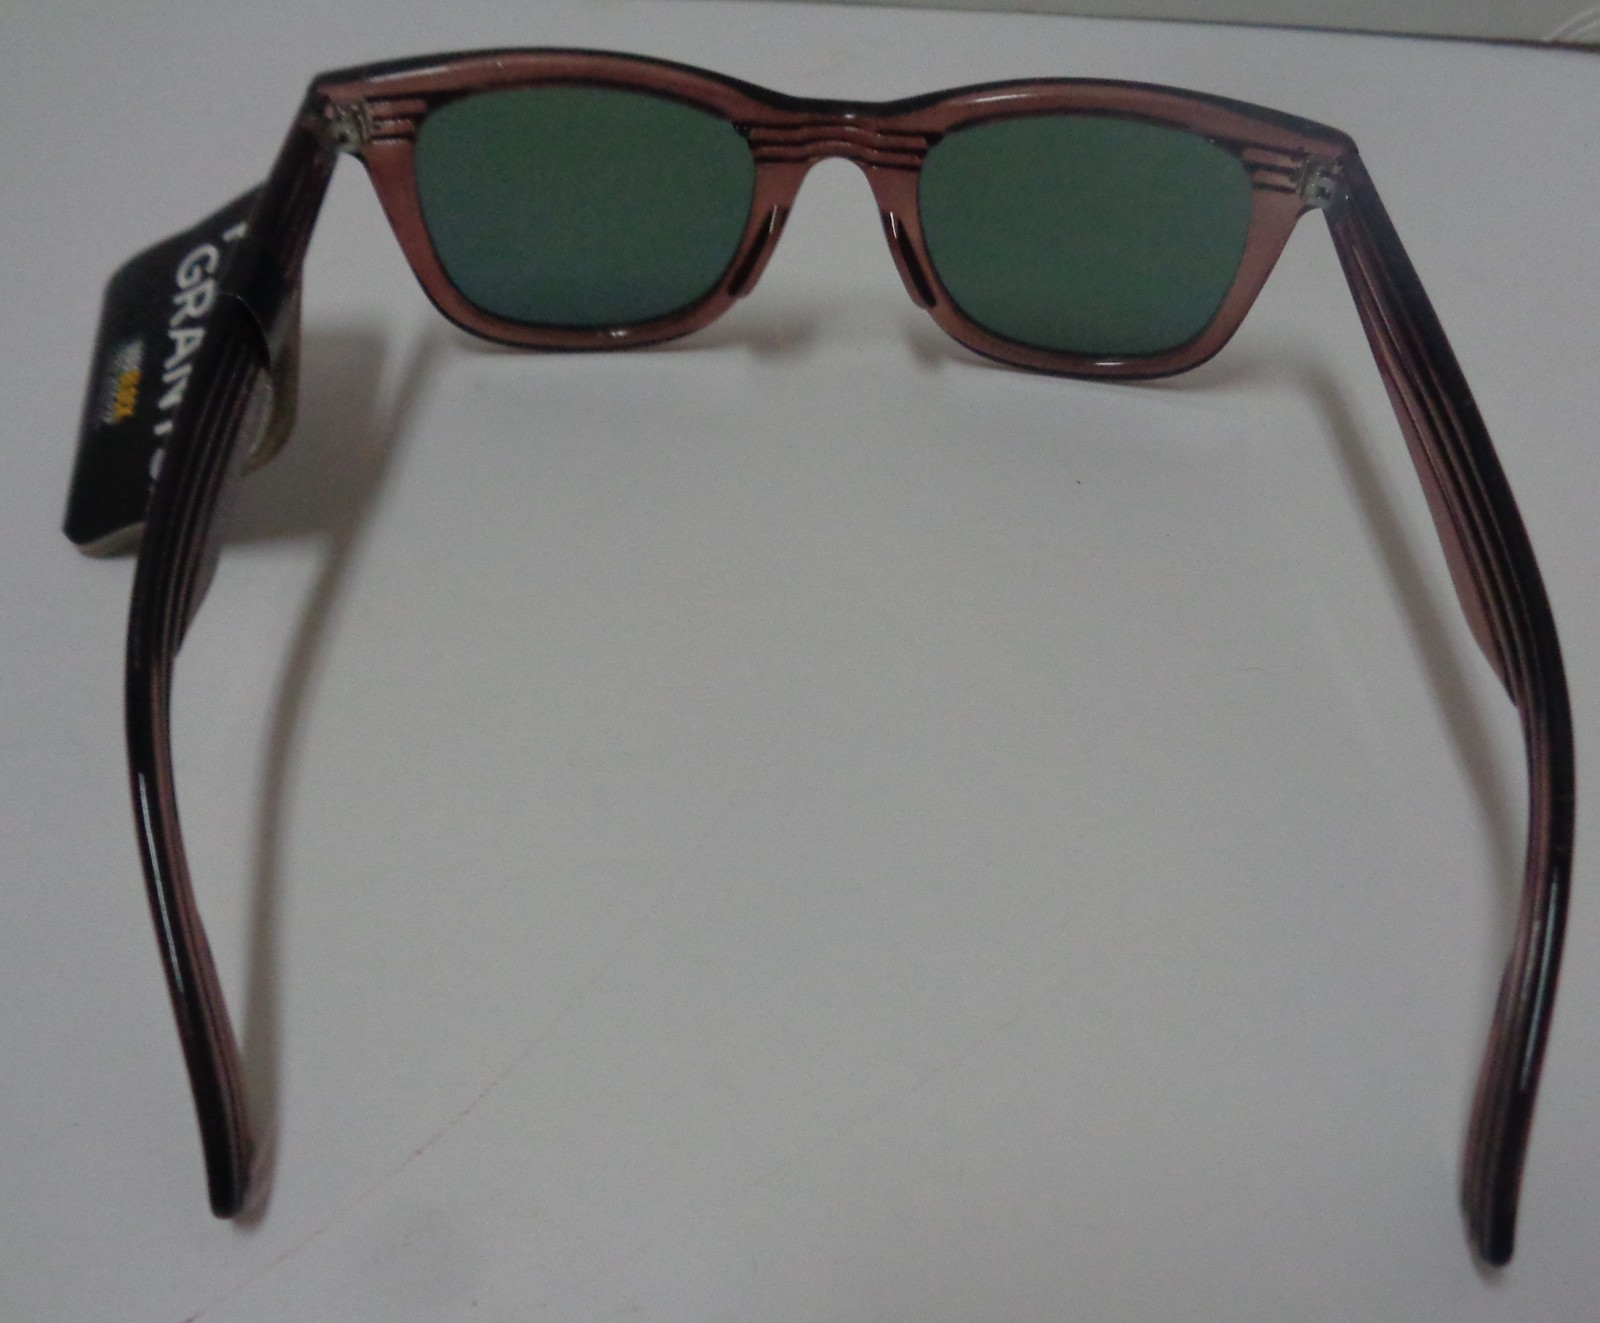 Foster Grant Sunglasses Wood Design Frame Mirrored NWT 100% UVA UVB Protection image 4